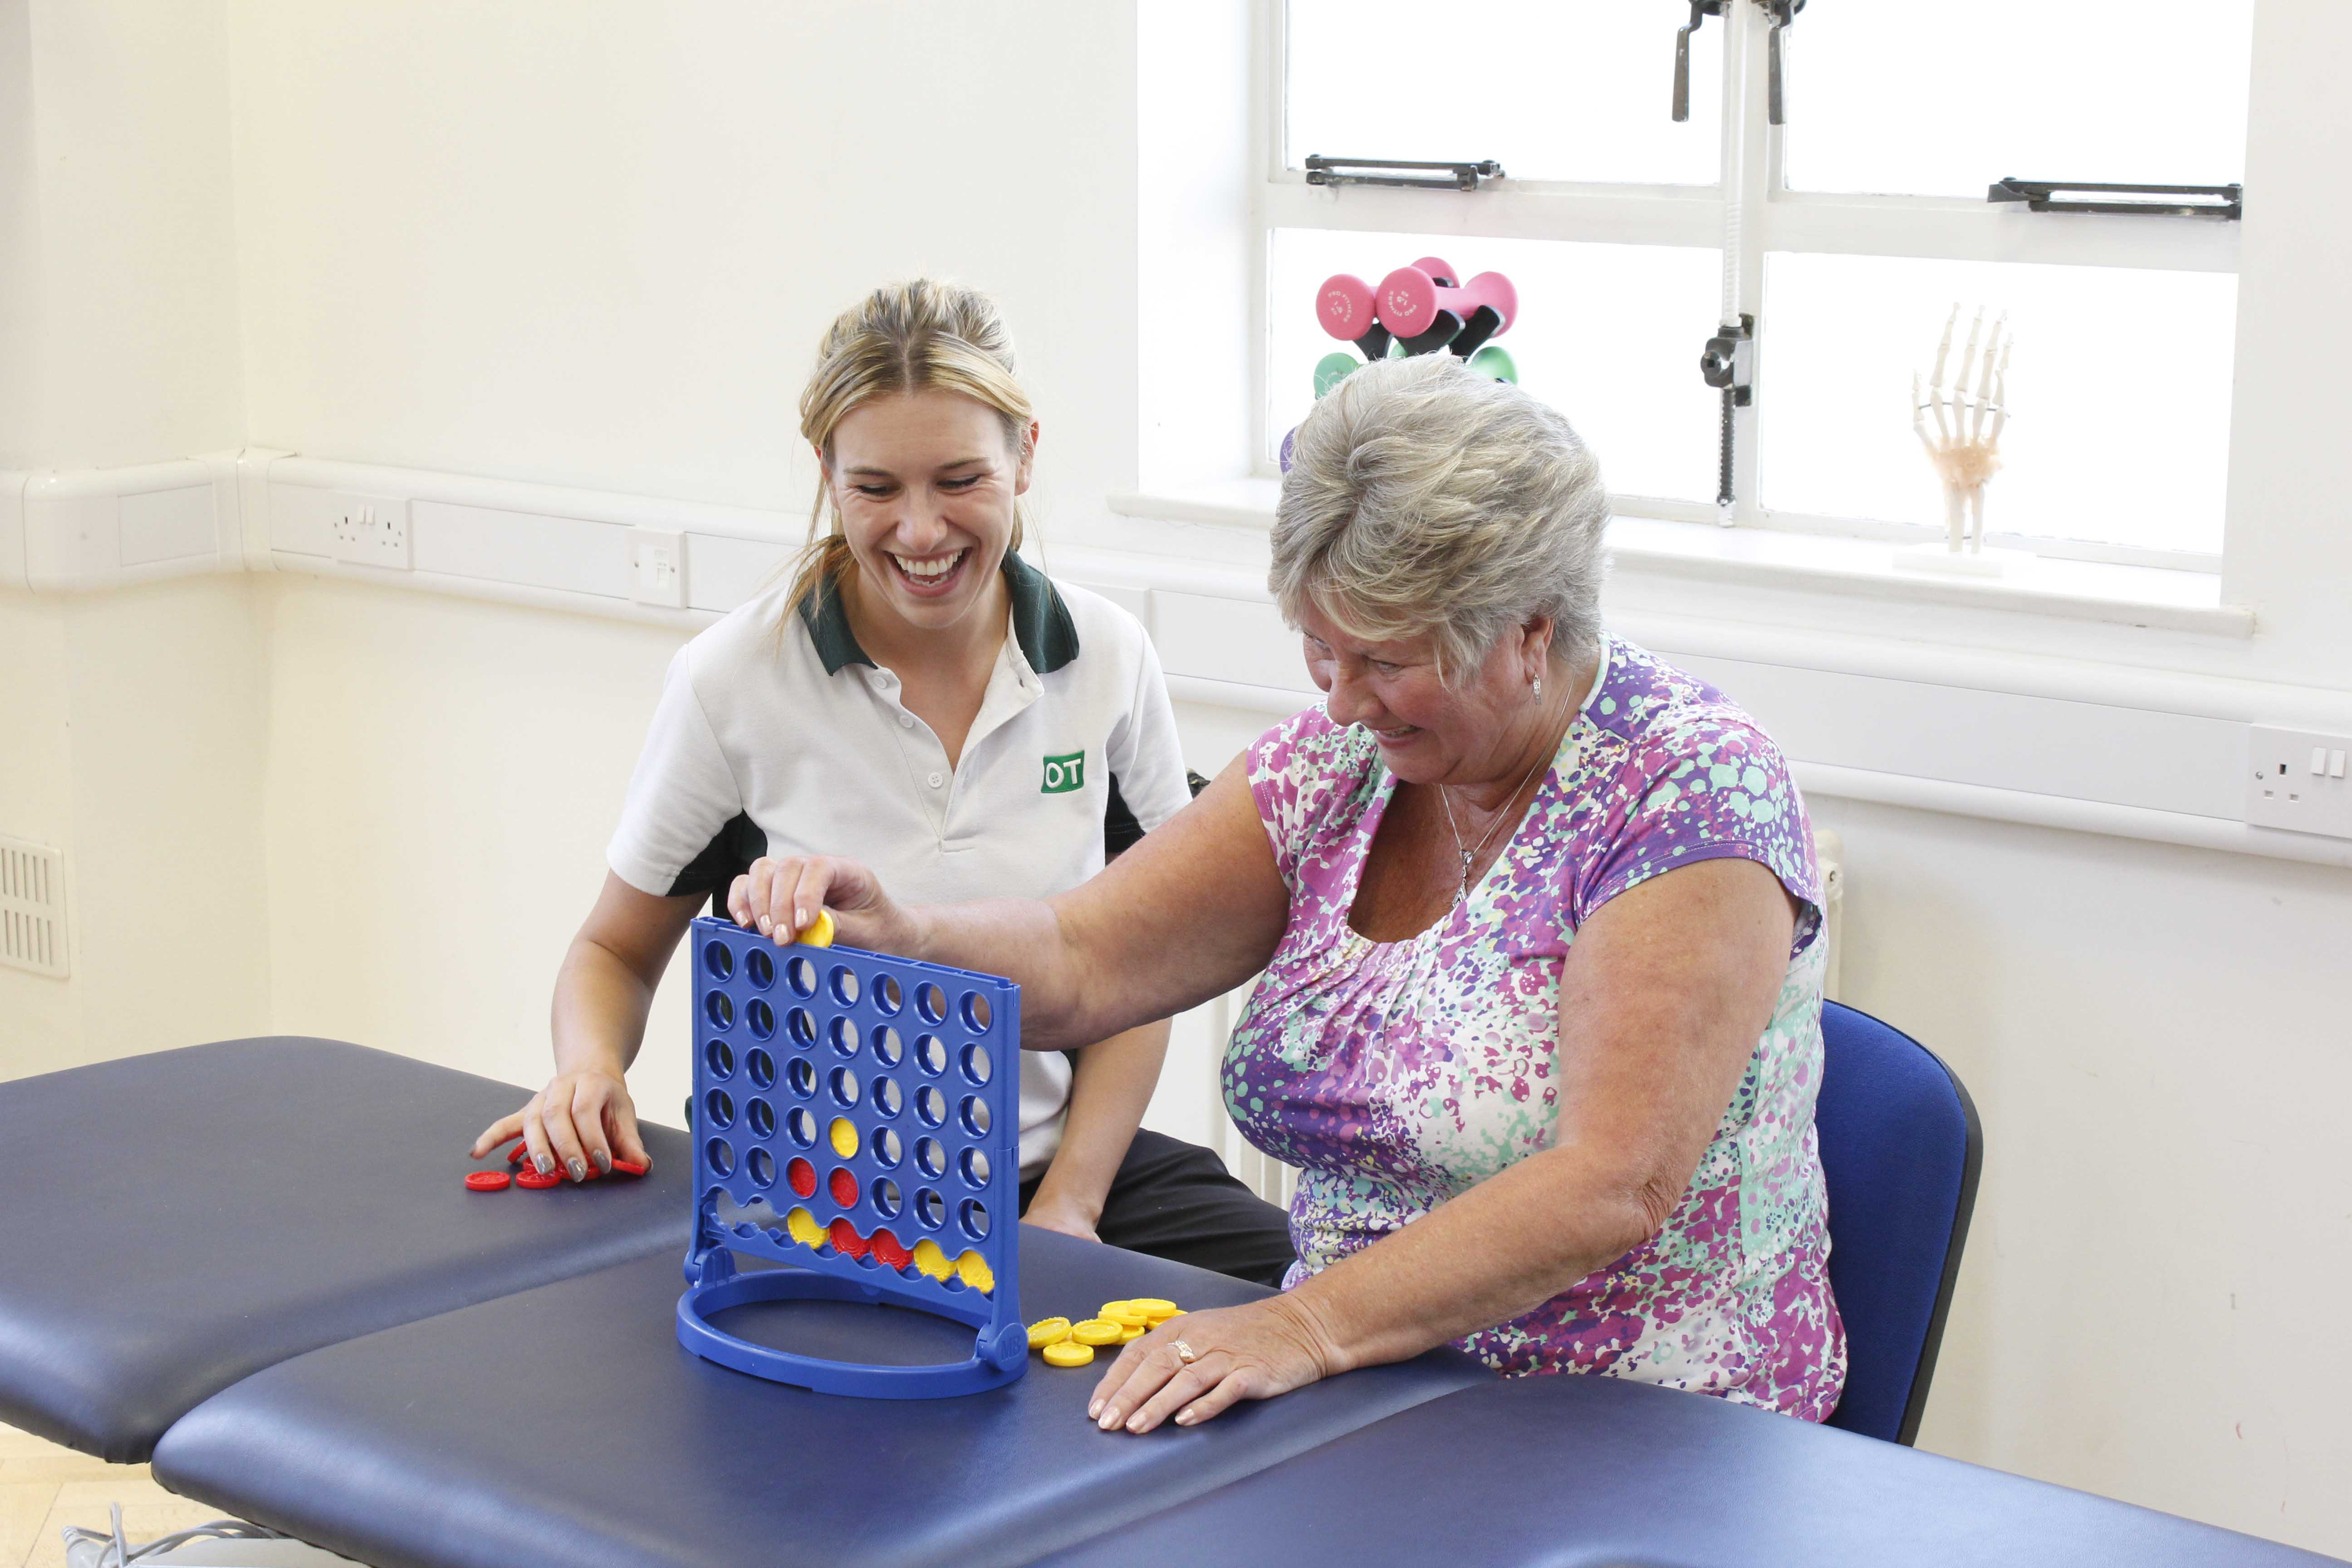 Occupational therapist supervising functional fine motor skill exercises